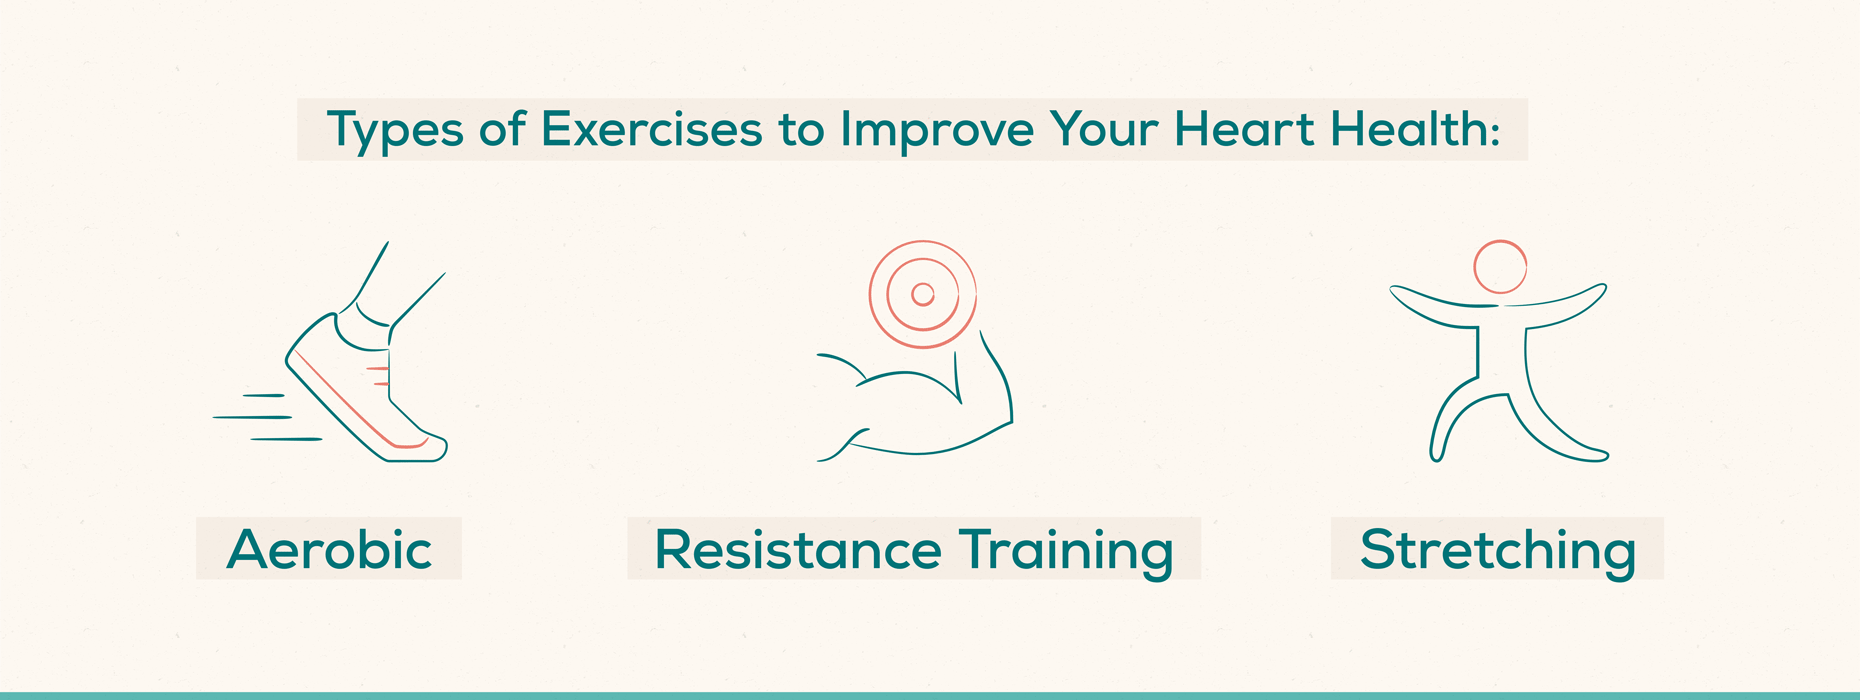 heart-healthy-exercises-types